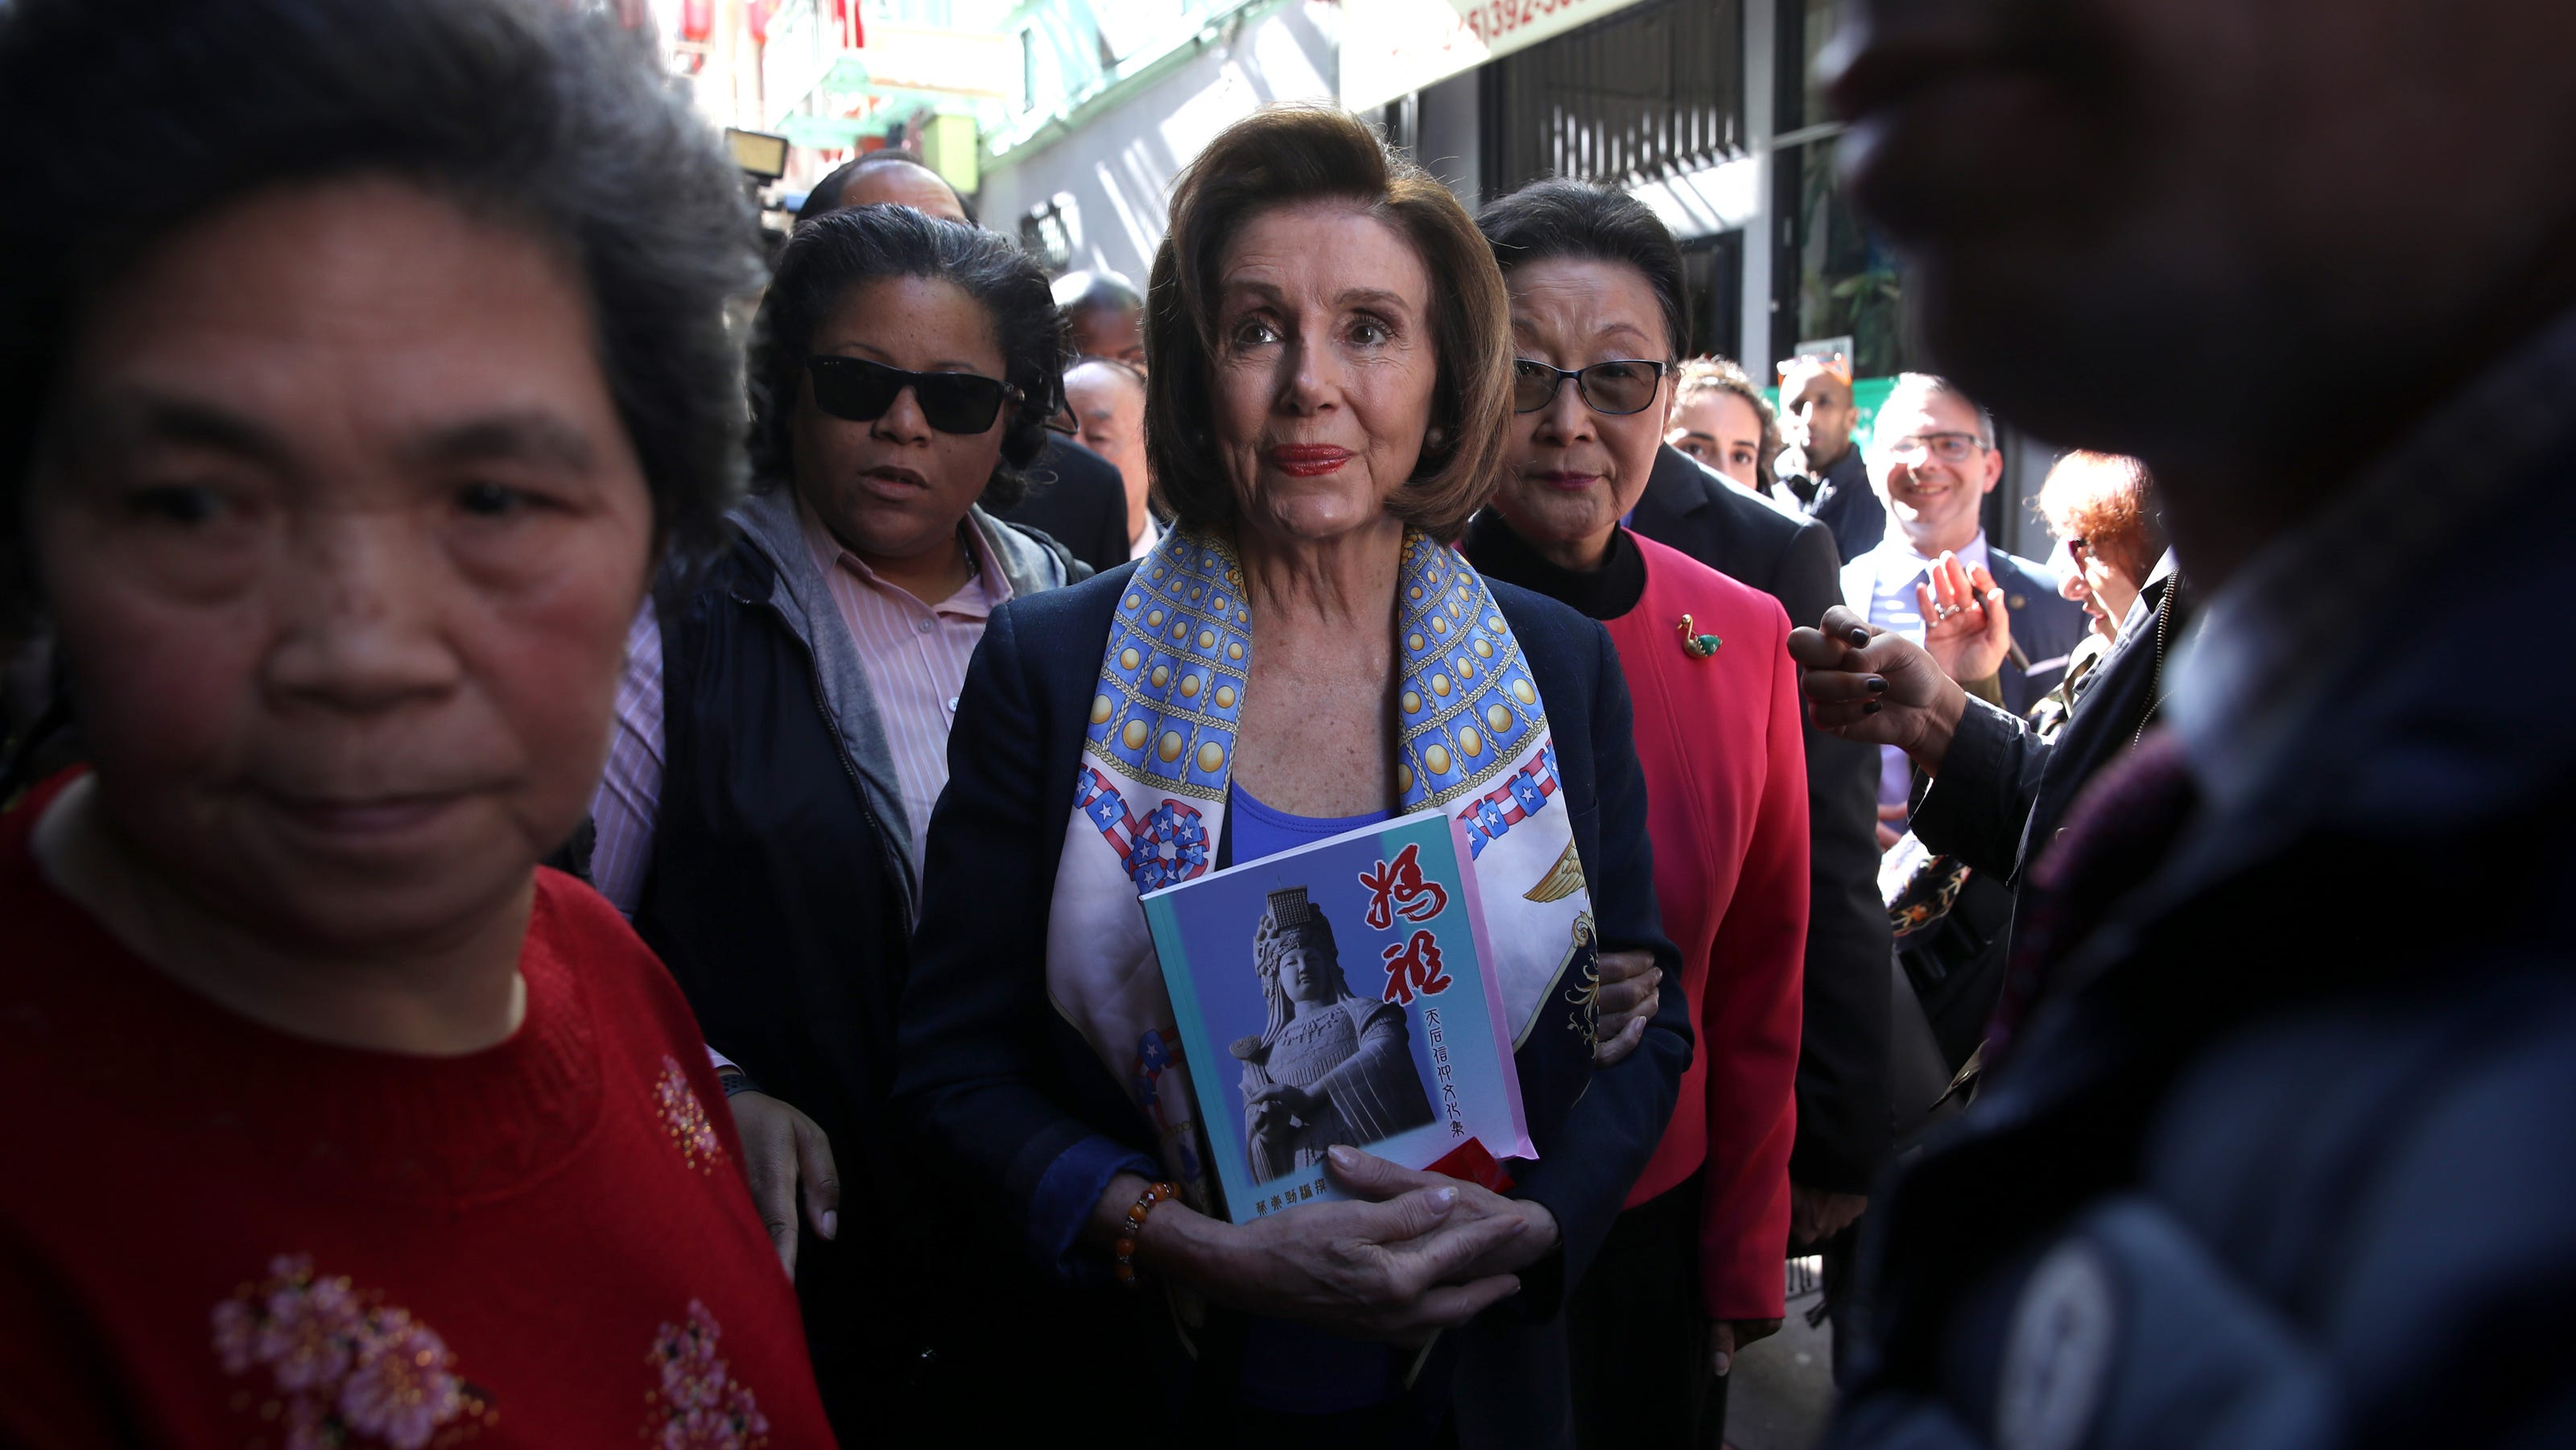 Nancy Pelosi in Salty Cracker (2015)